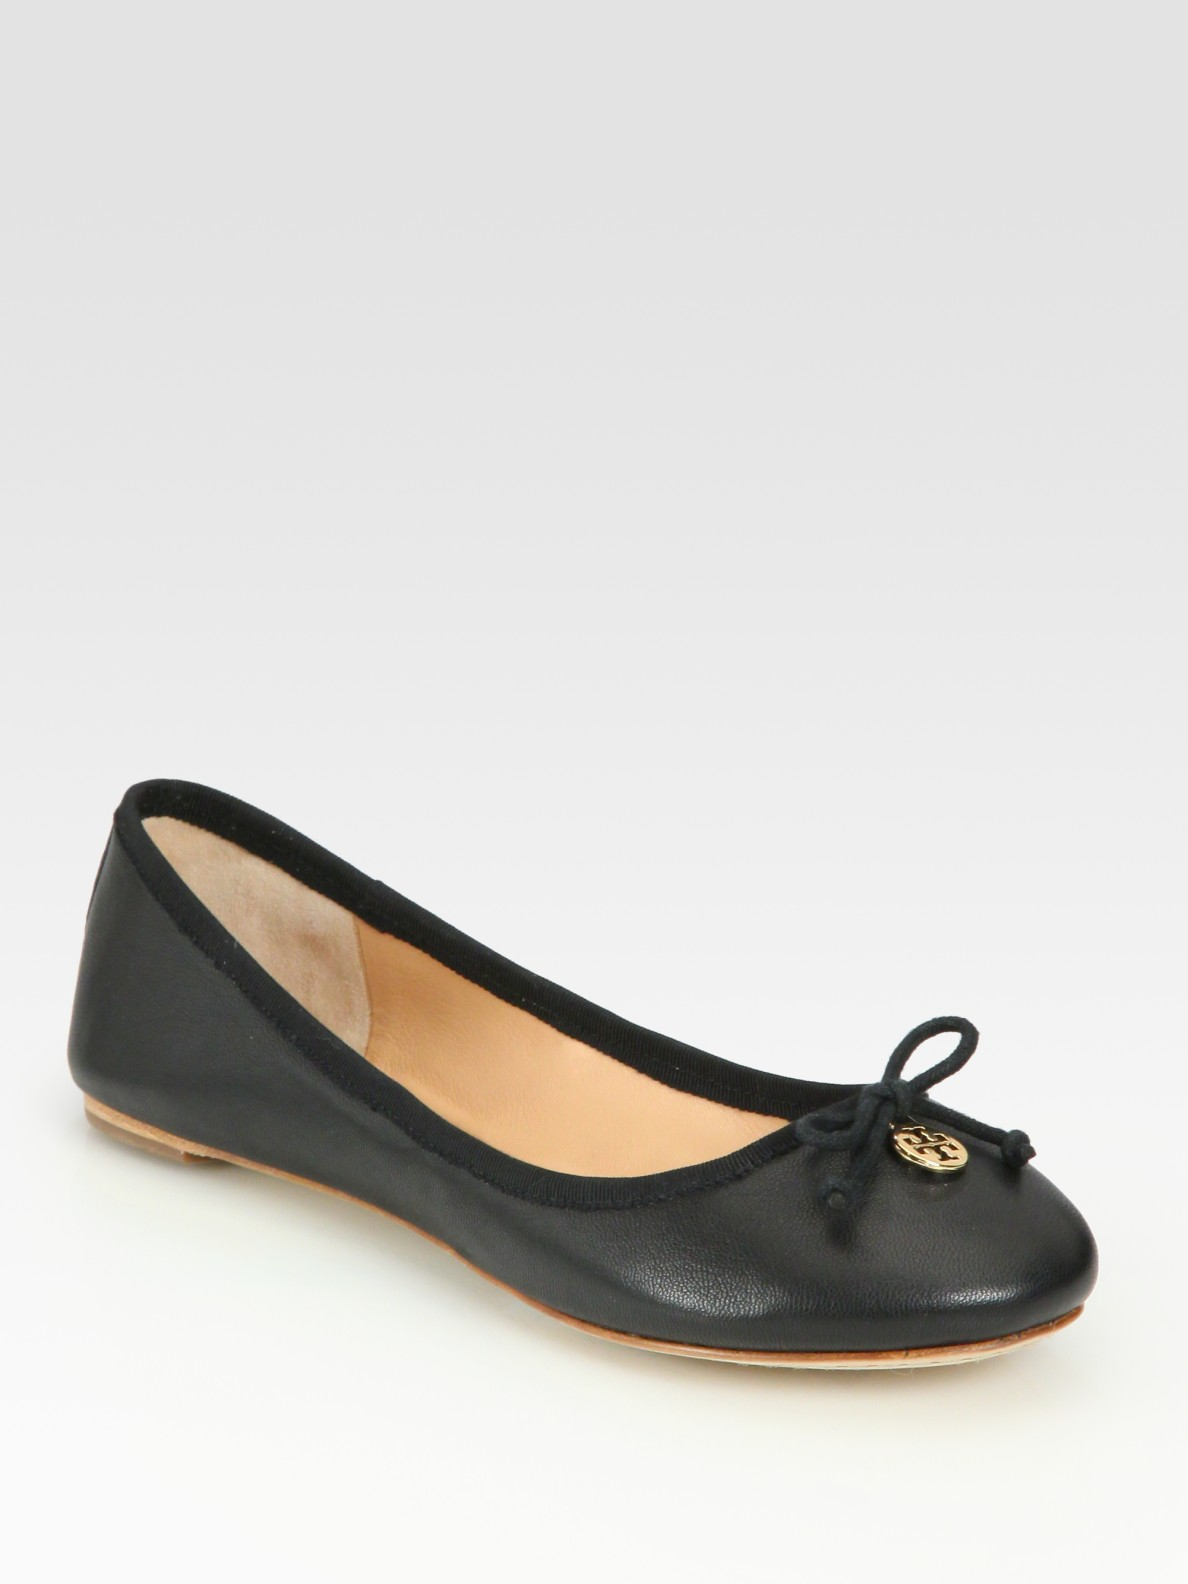 3e3b28cebf5 wholesale lyst tory burch chelsea leather bow logo ballet flats in black  51500 243ed